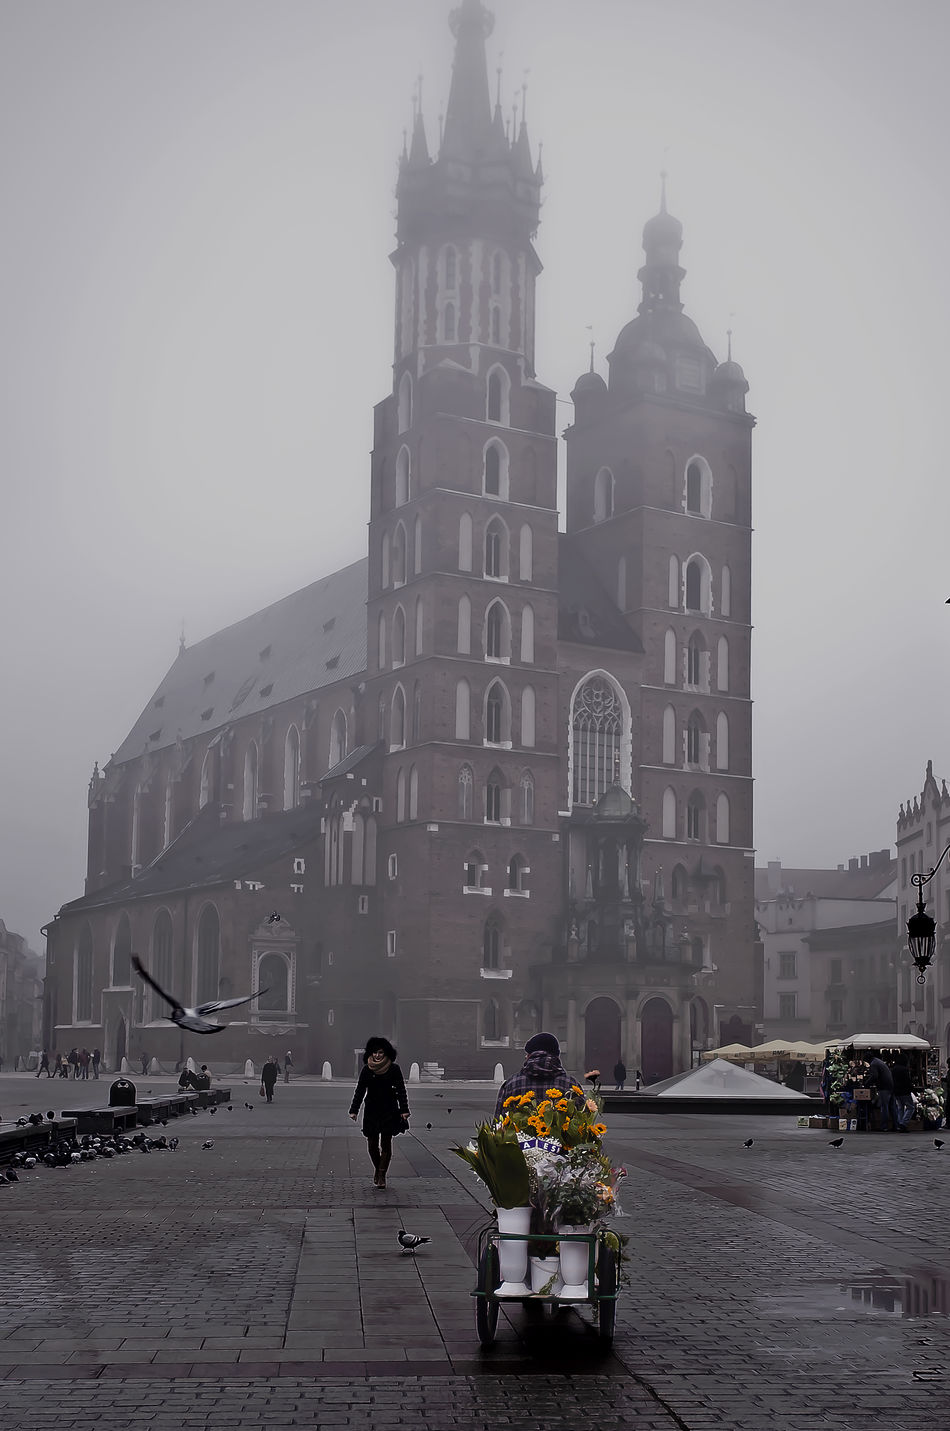 Architecture City Day Kraków, Poland Lifestyles Main Square People Streetphotography